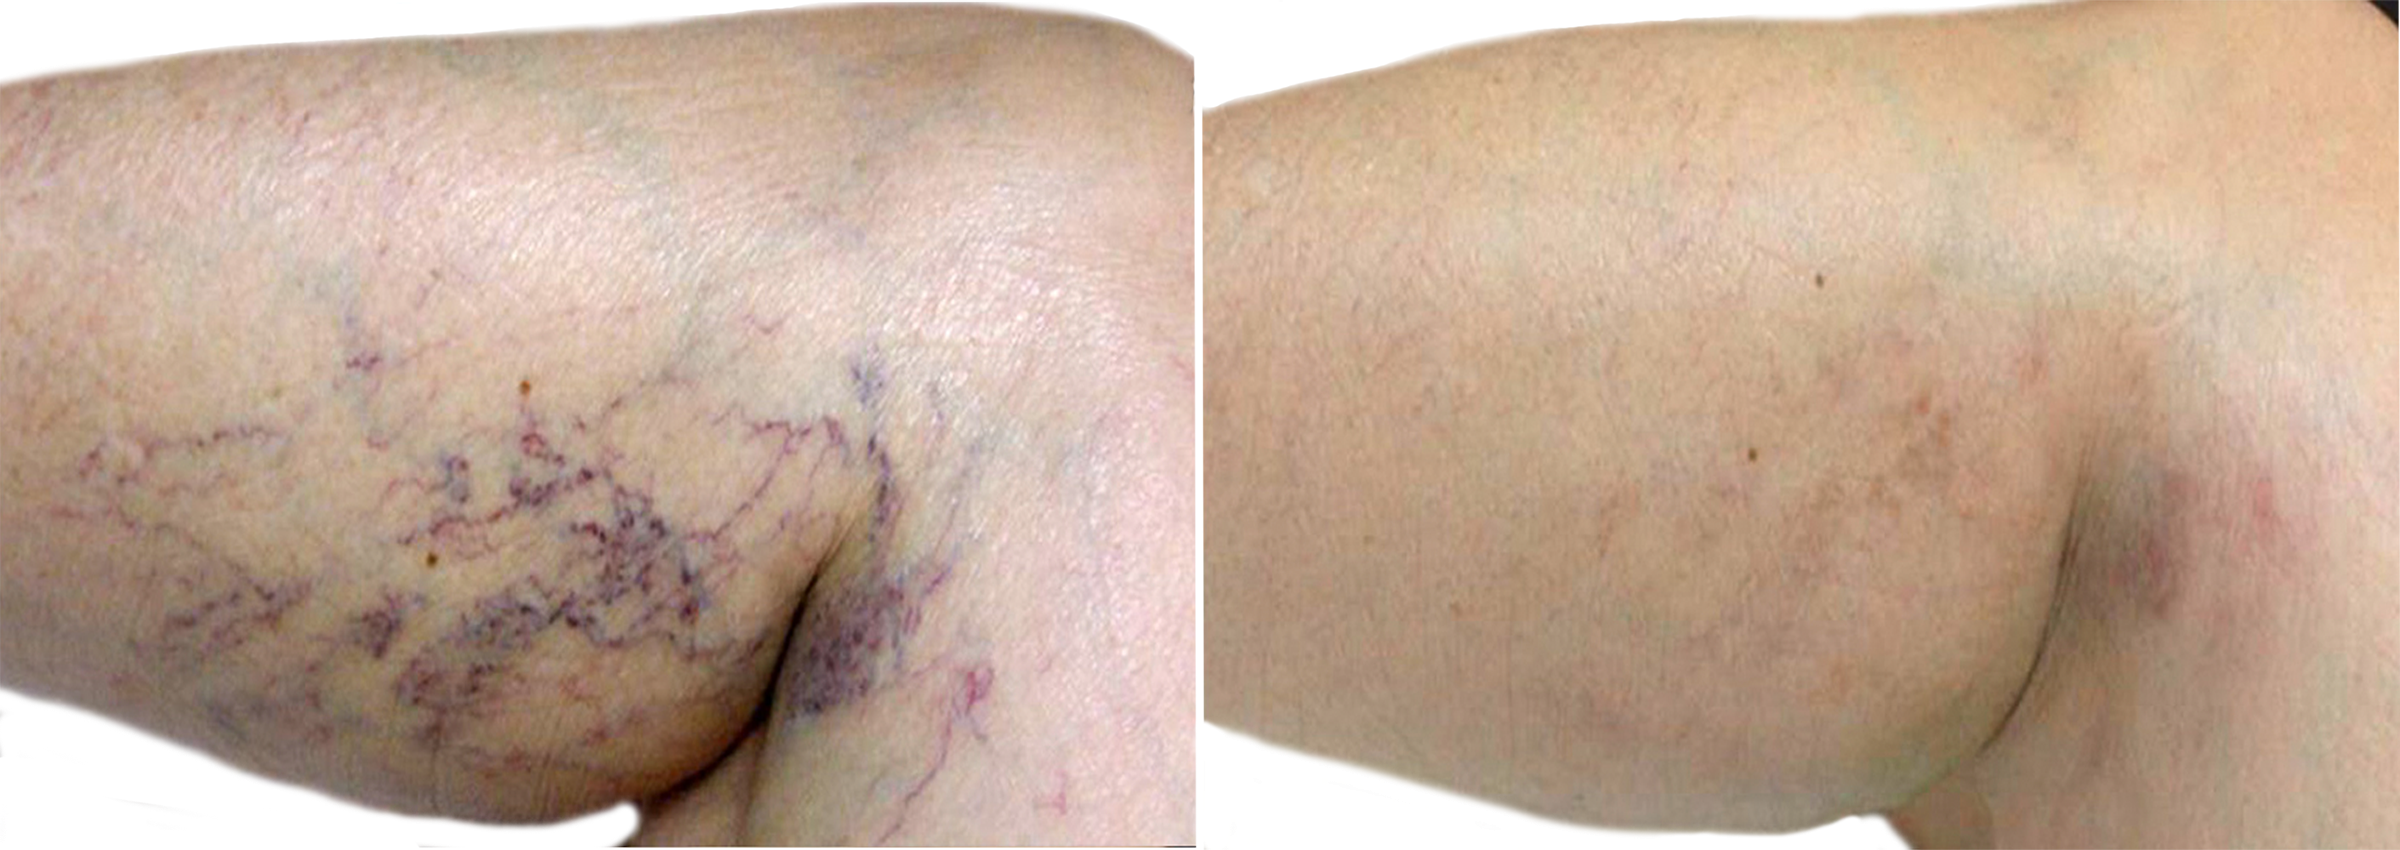 Long Island leg vein removal before after